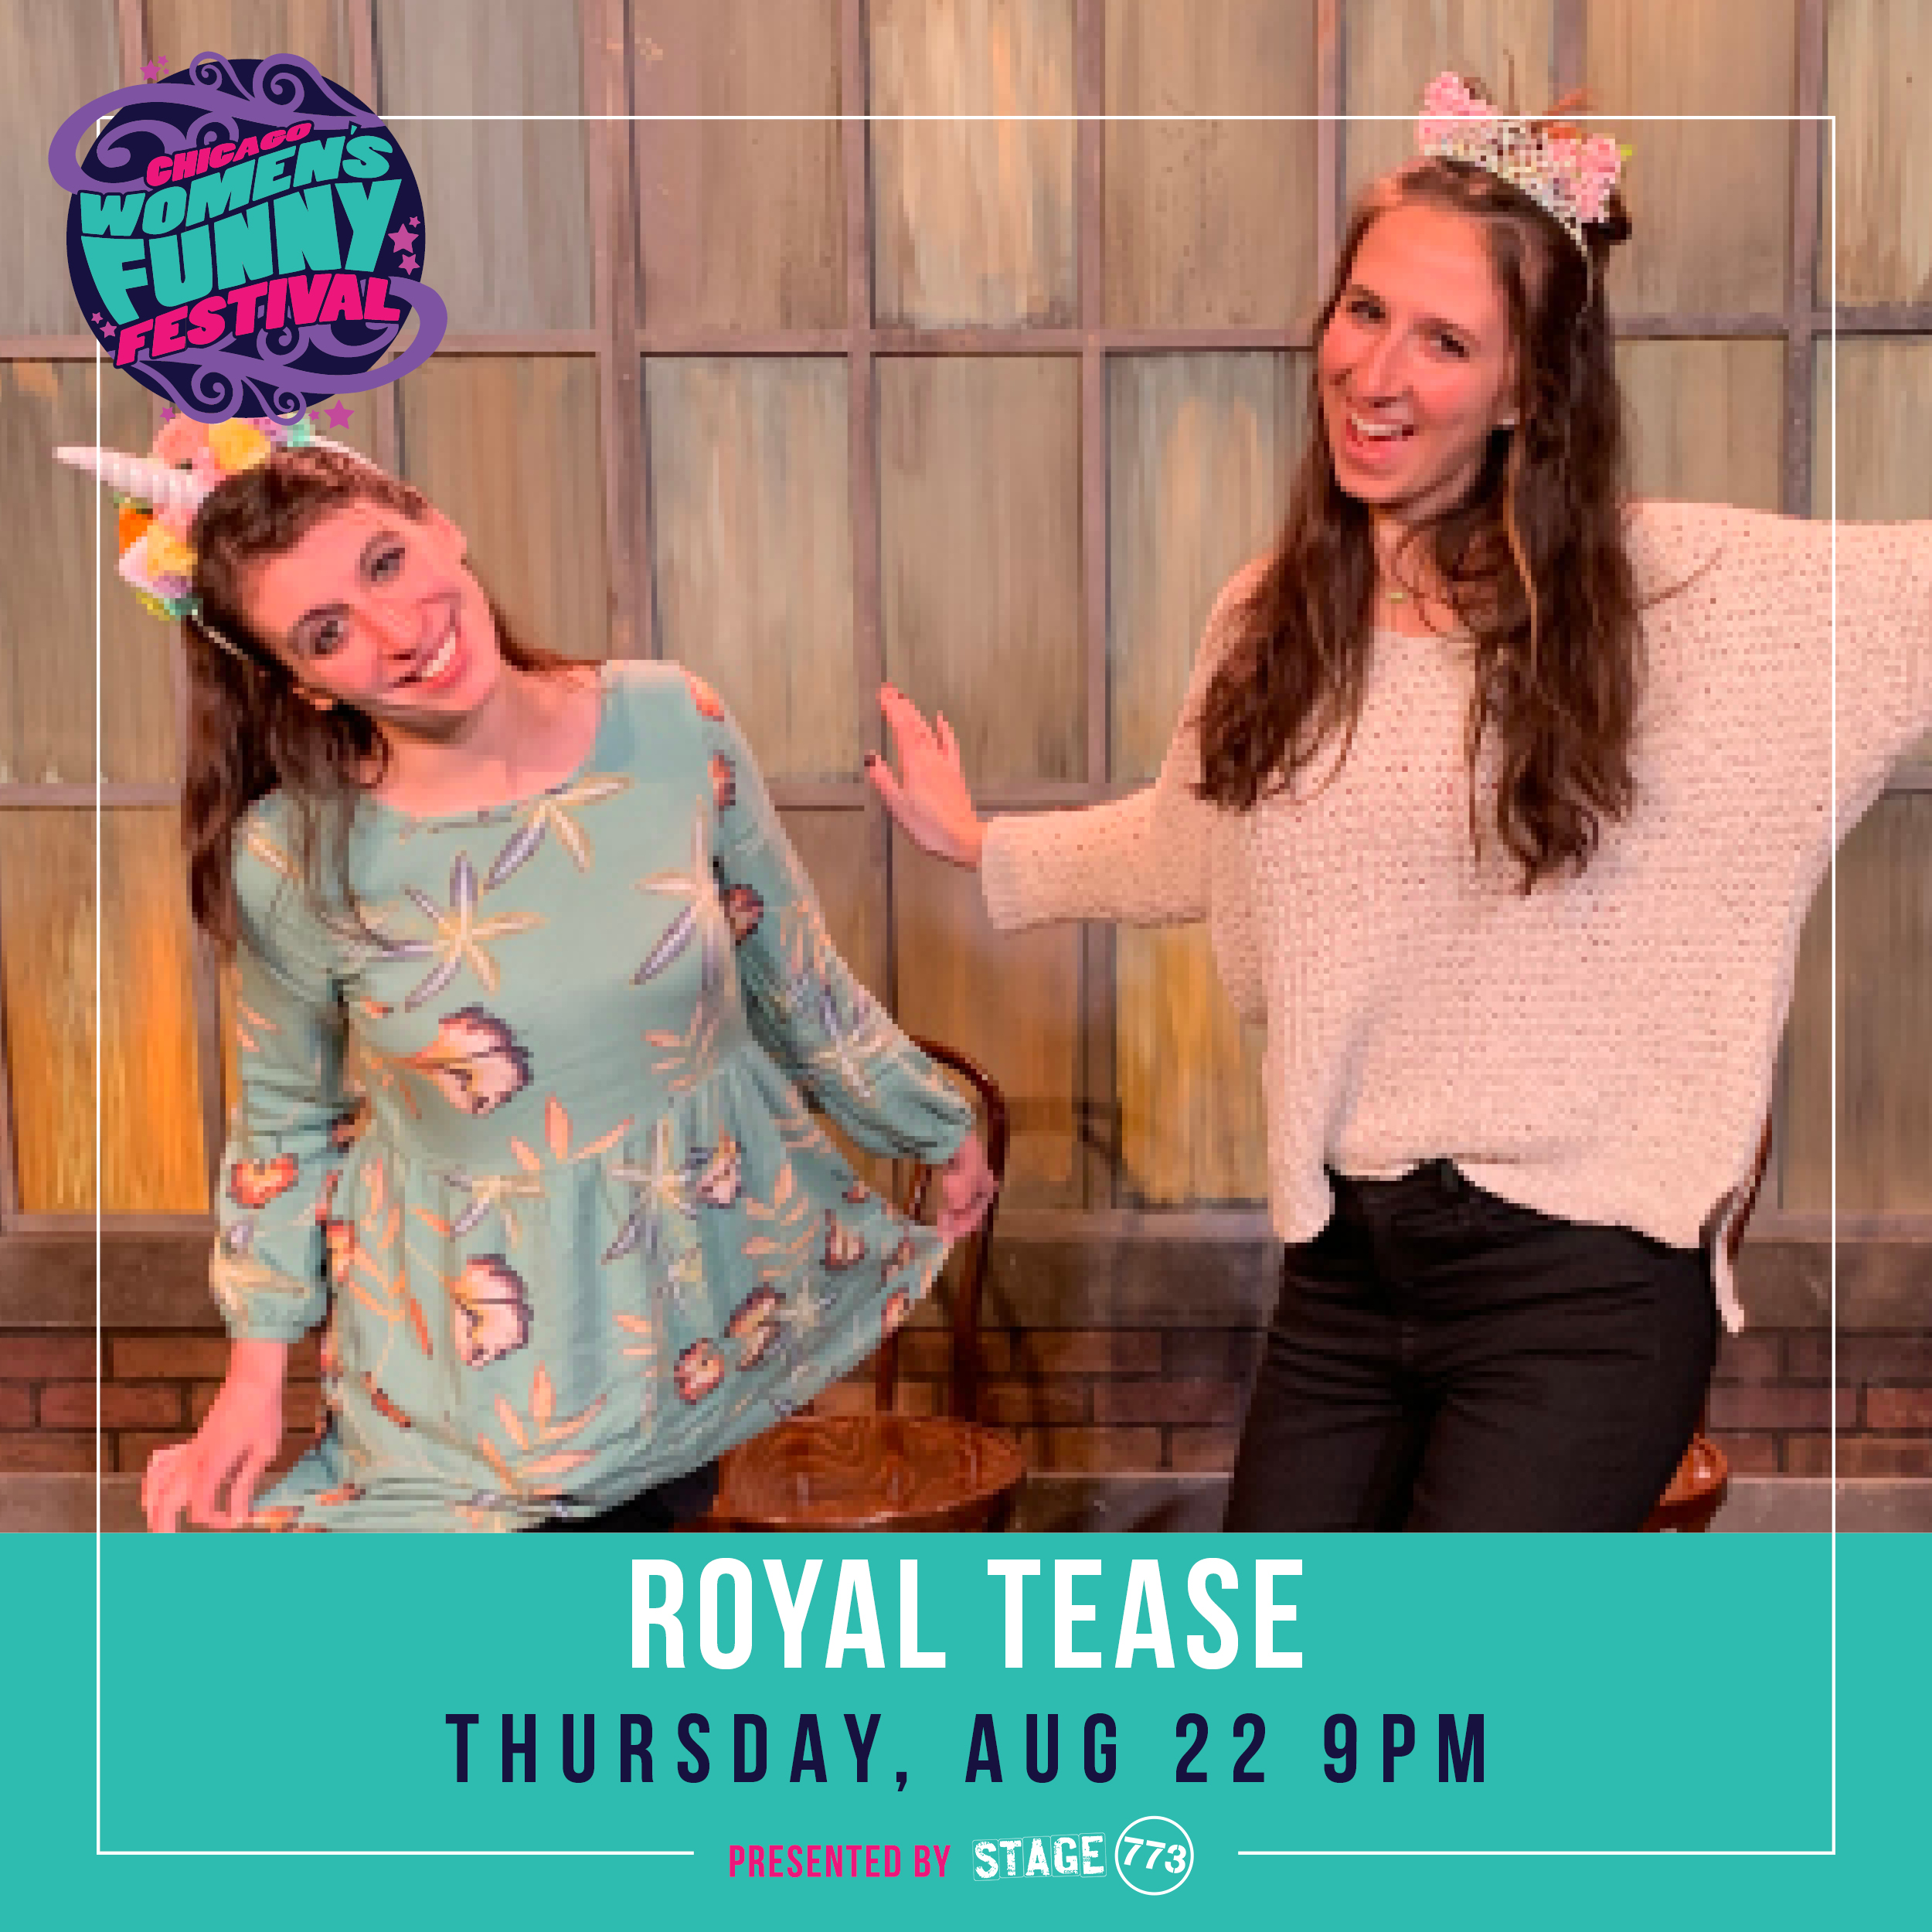 RoyalTease_Thursday_9PM_CWFF20195.jpg